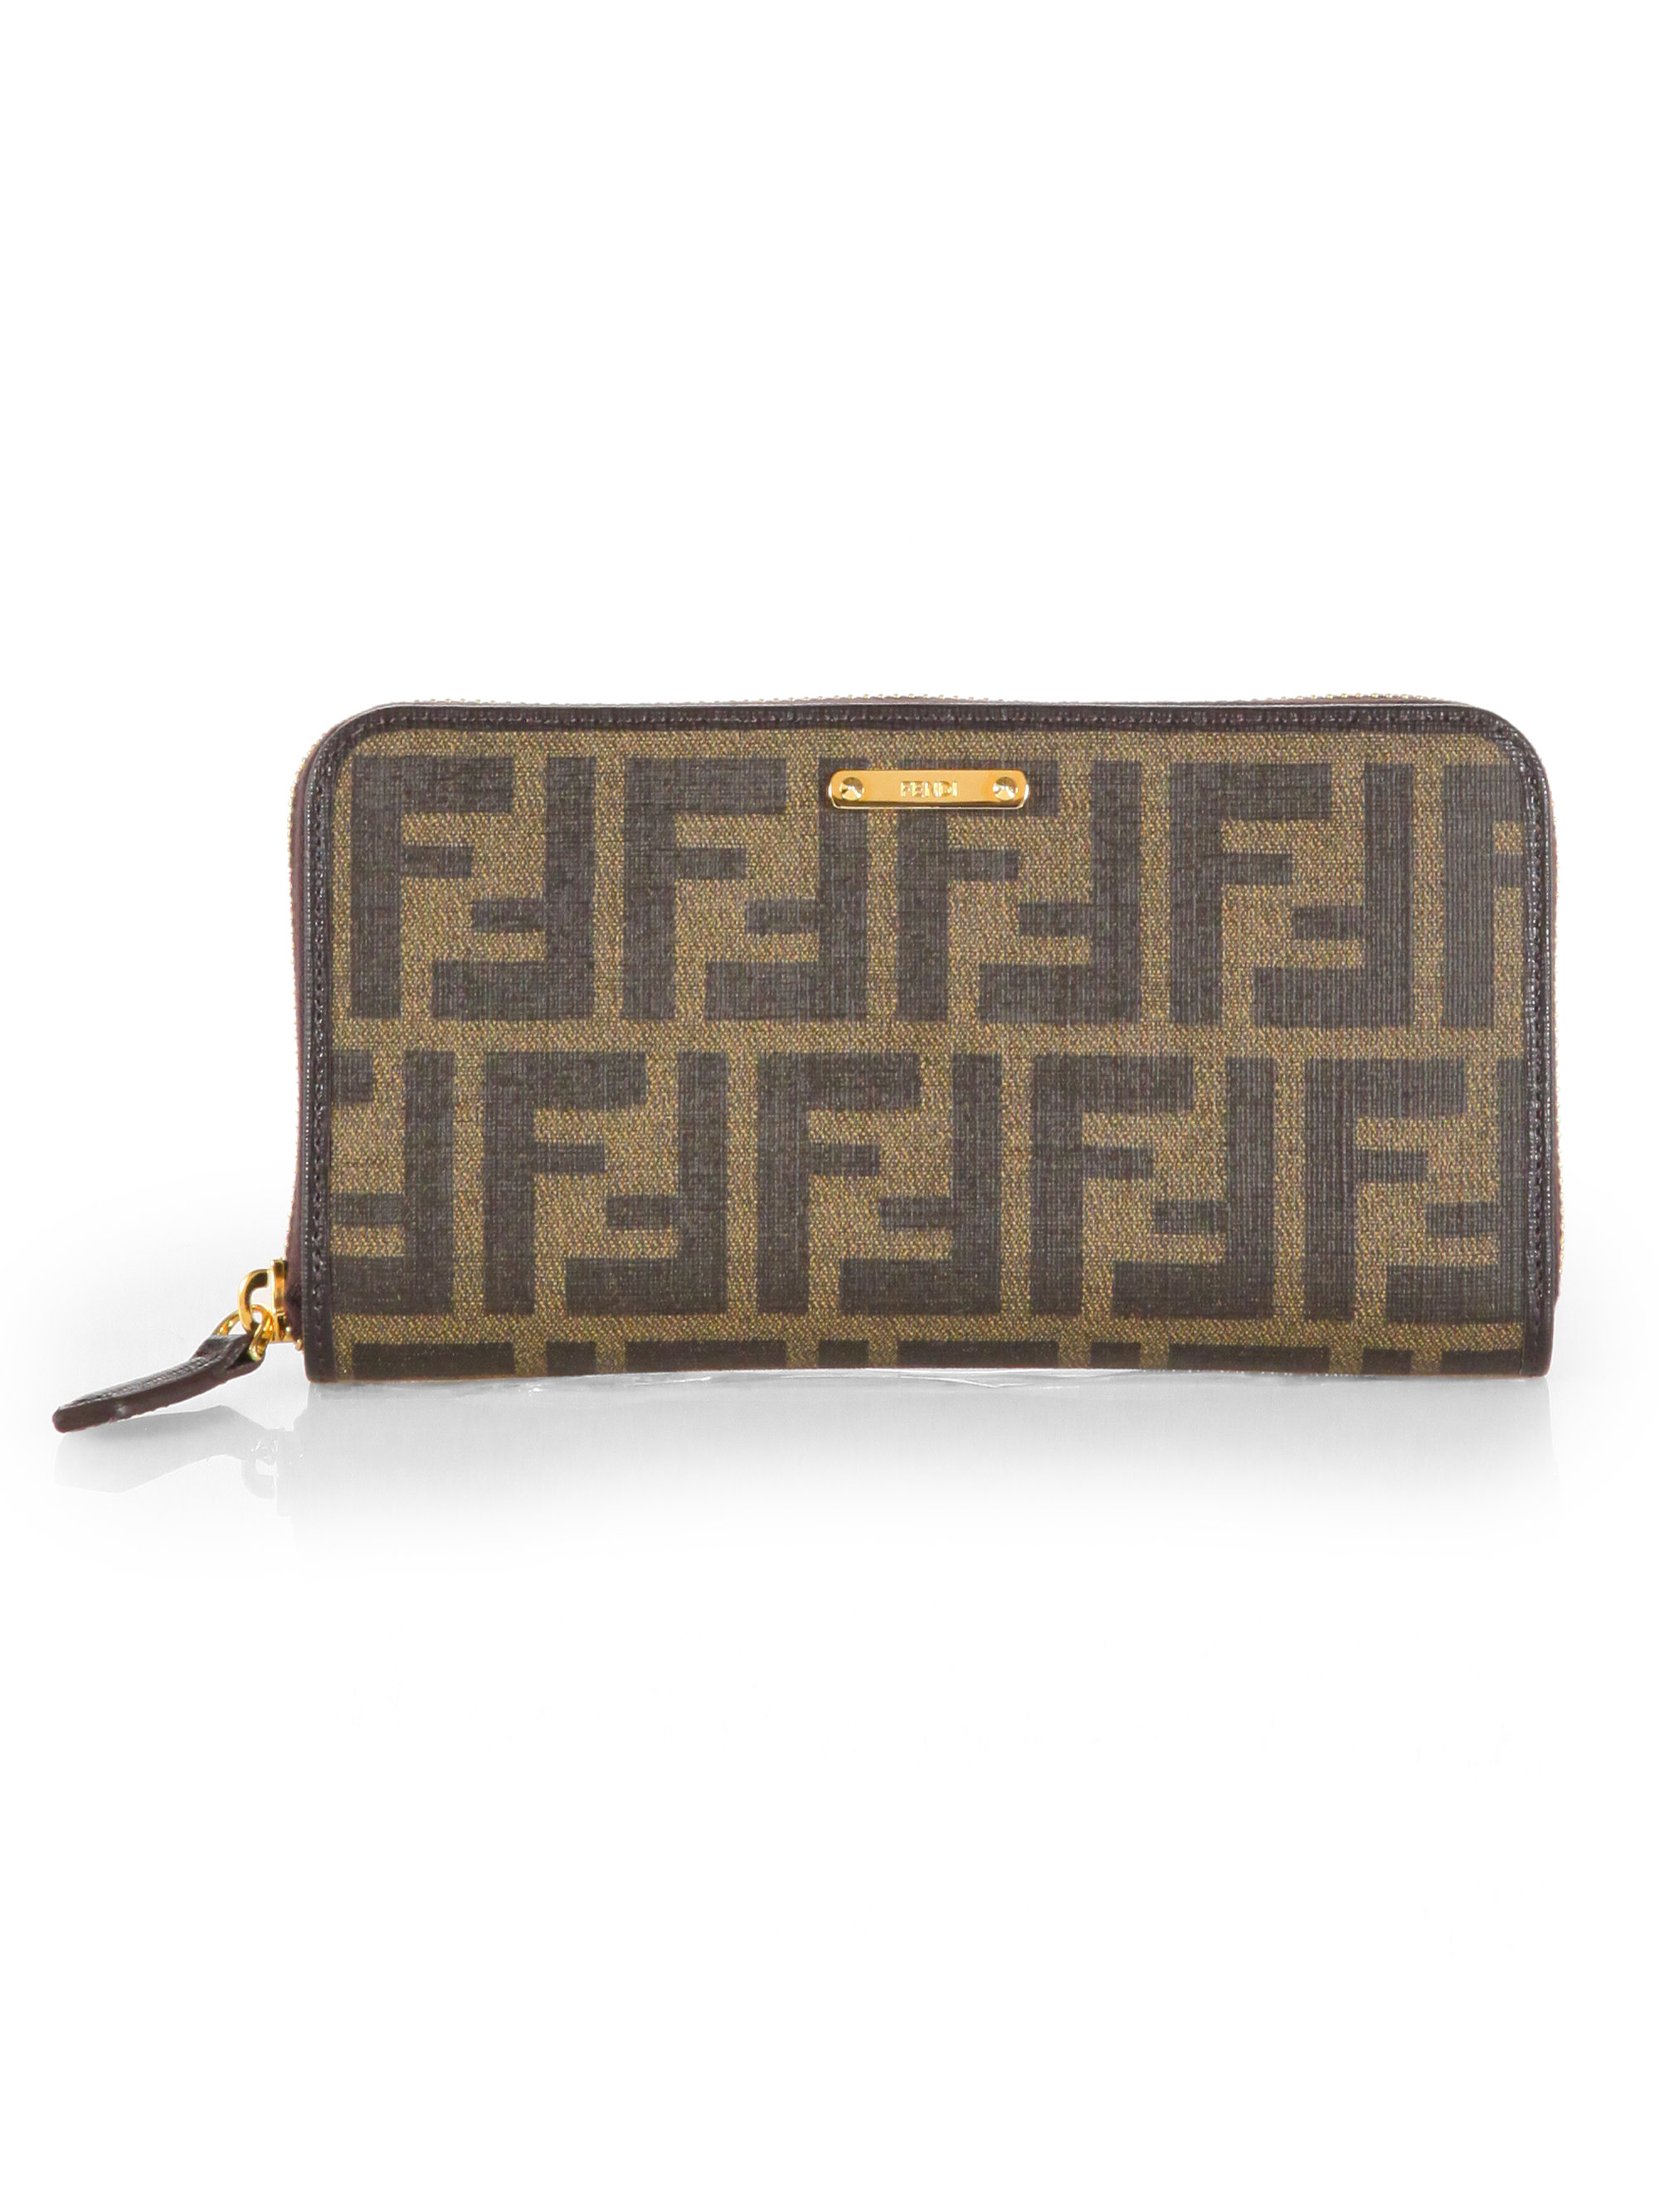 0b2a4e84bea3 ... good fendi zucca zip around wallet in brown lyst 35e2b dacef